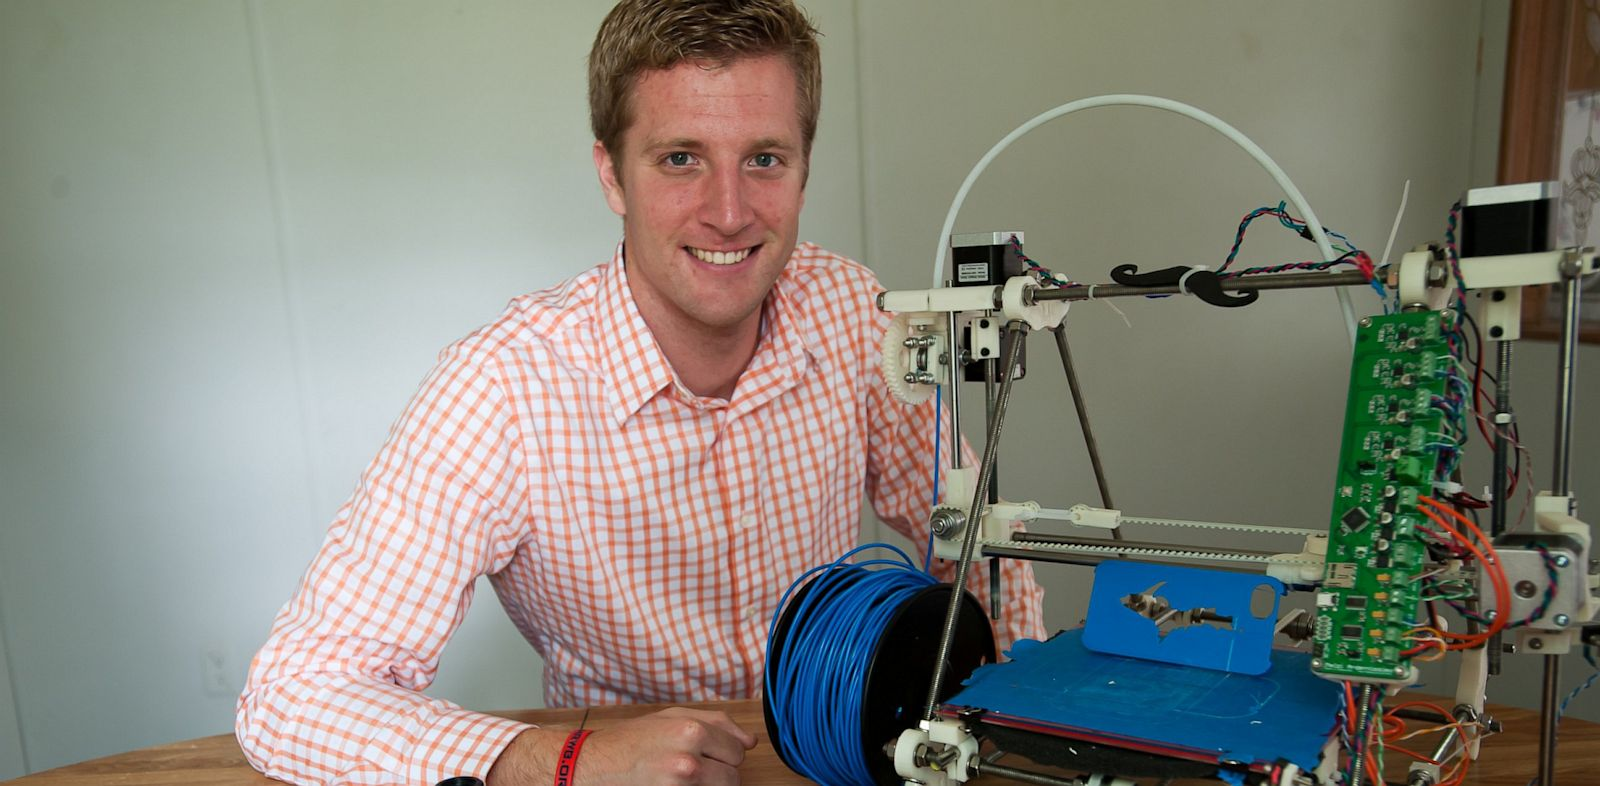 PHOTO: Ben Wittbrodt has used a 3D printer to print iPhone cases and shower head.